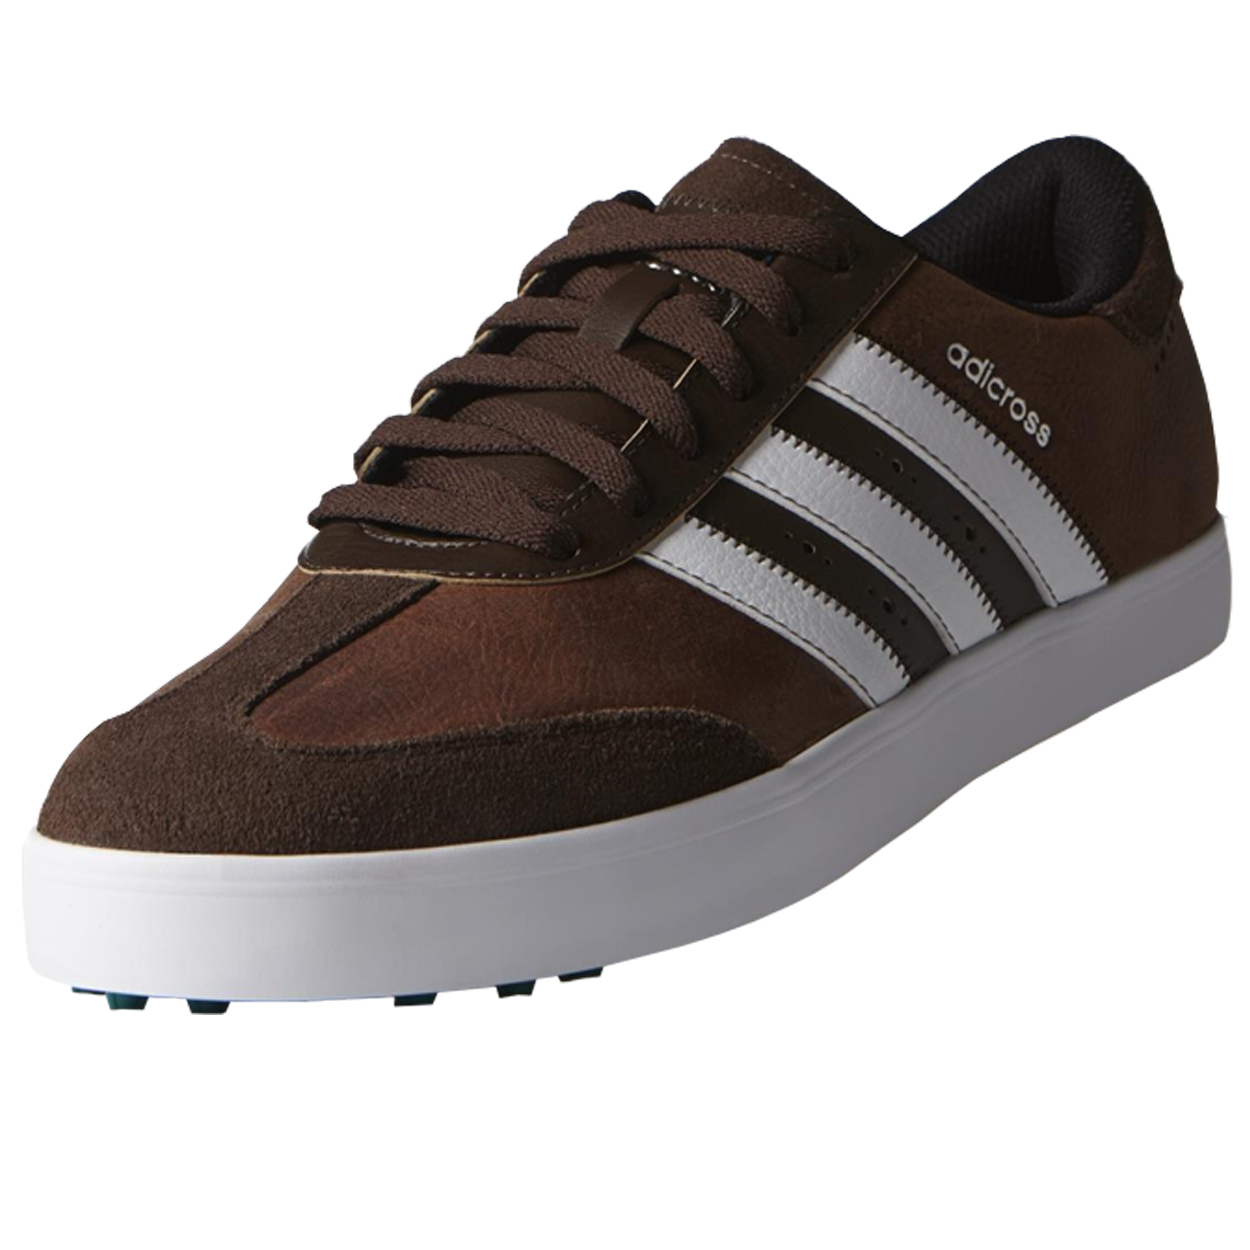 adidas mens adicross v spikeless golf shoes brand new ebay